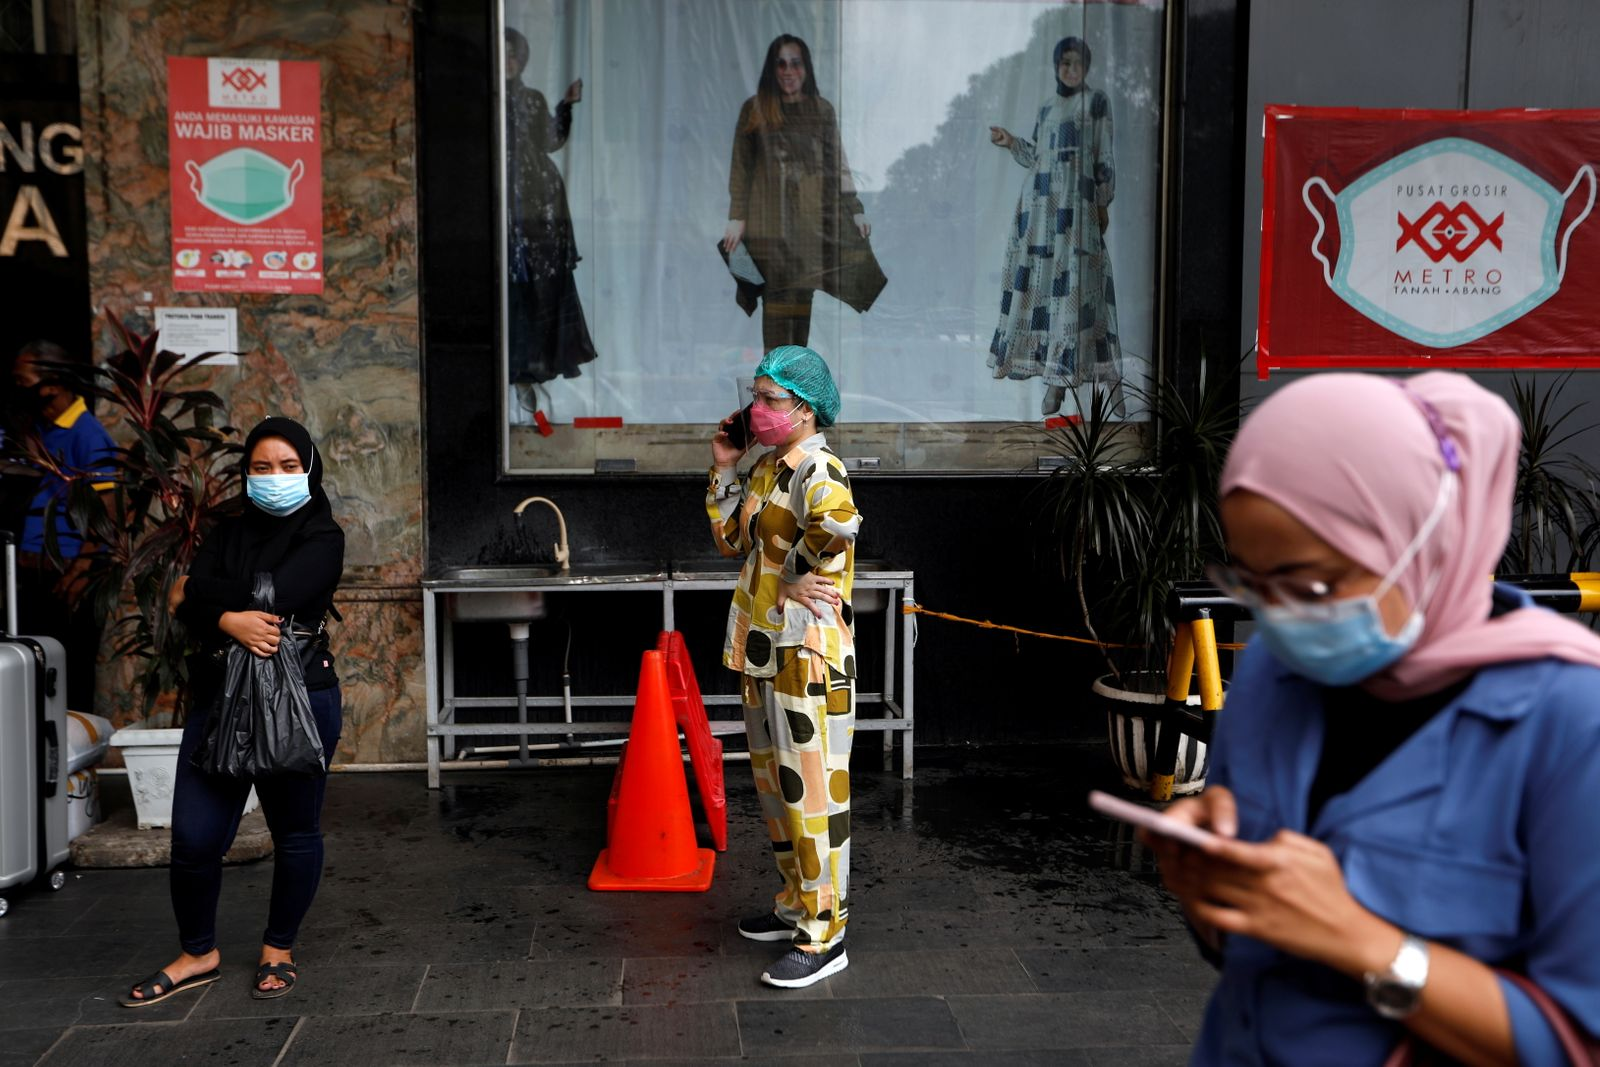 Women wearing protective masks following the outbreak of the coronavirus disease (COVID-19) stand outside a shopping mall at Tanah Abang textile market in Jakarta